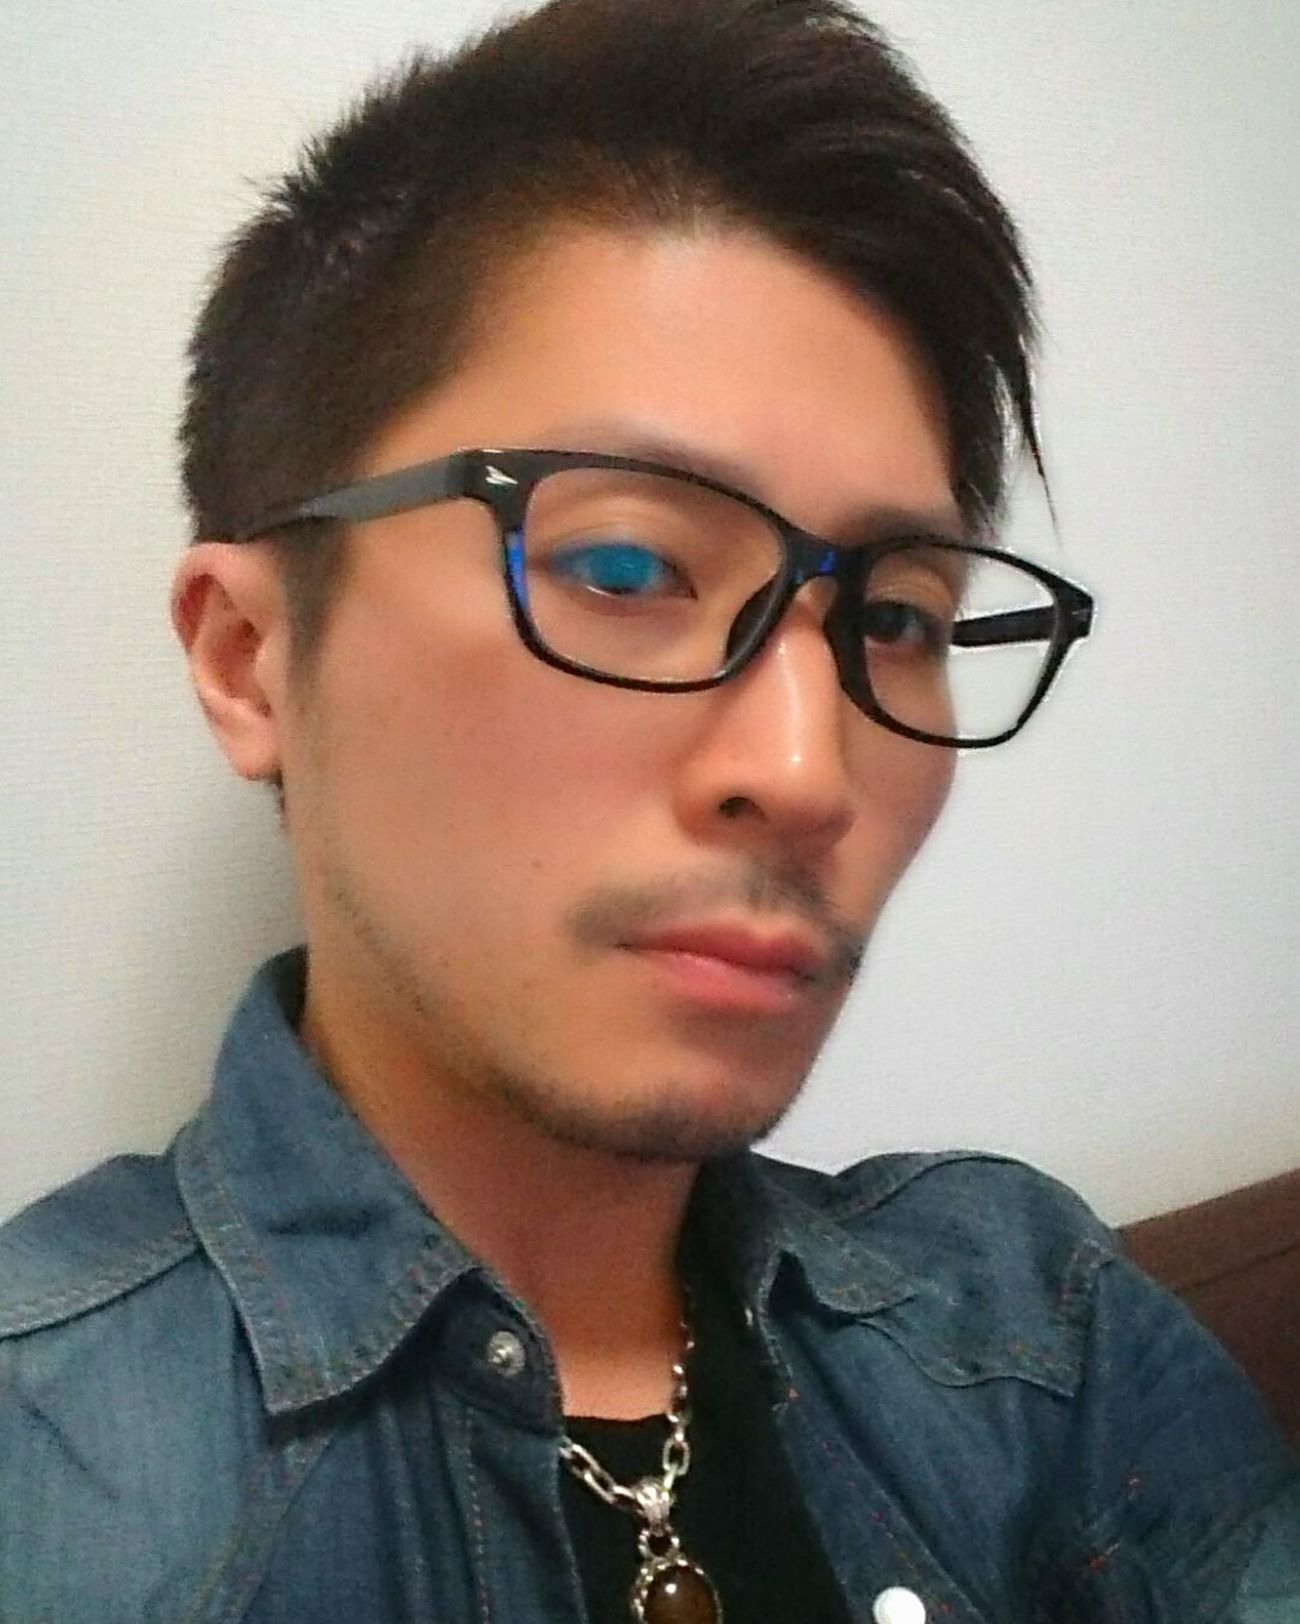 New眼鏡 That's Me Eyewear Zoff